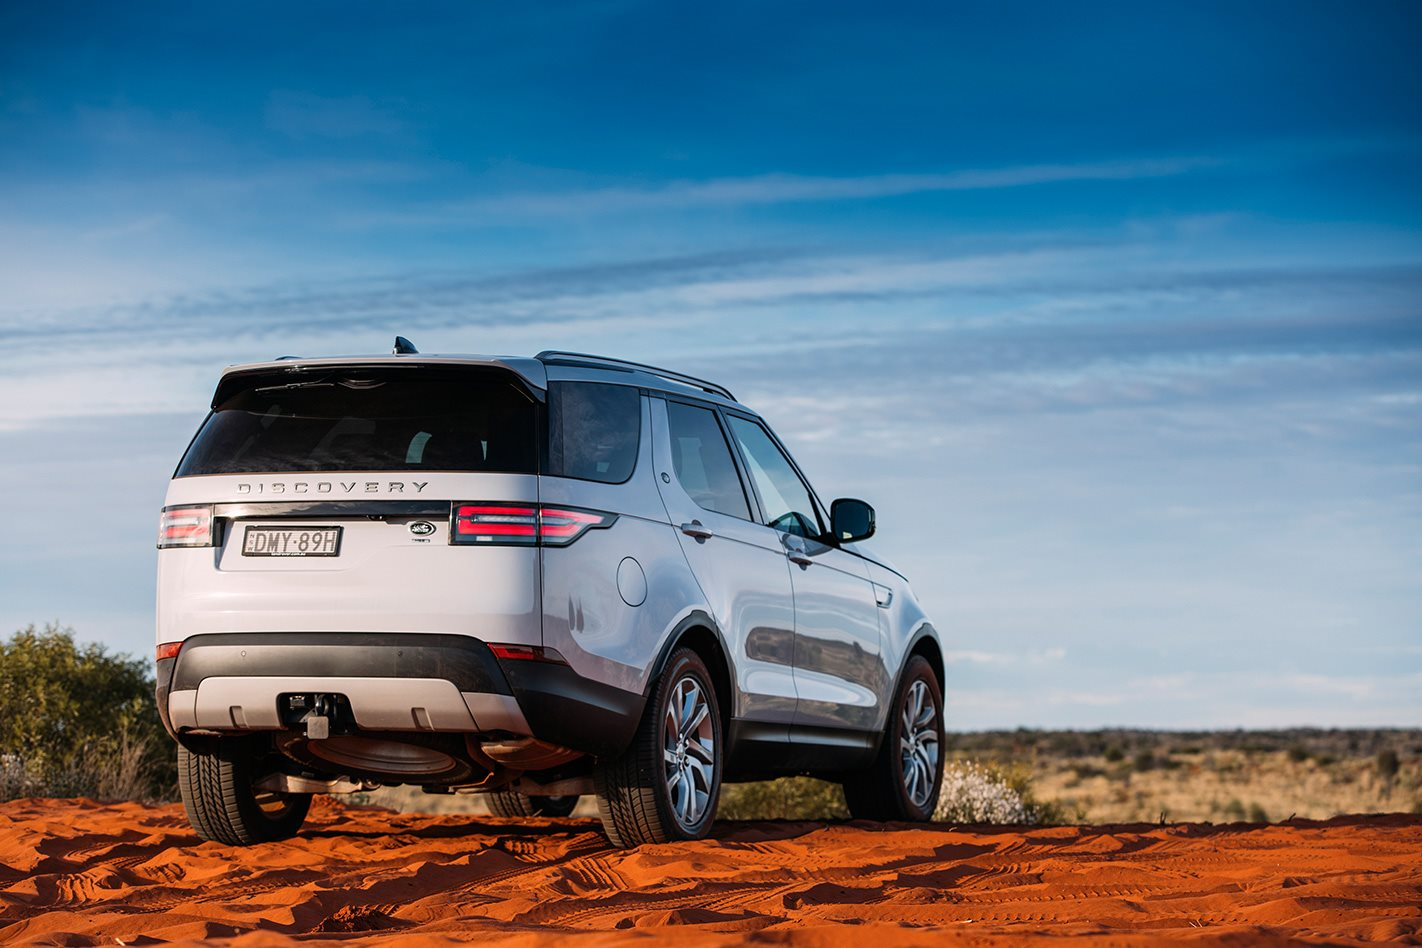 2017 Land Rover Discovery rear